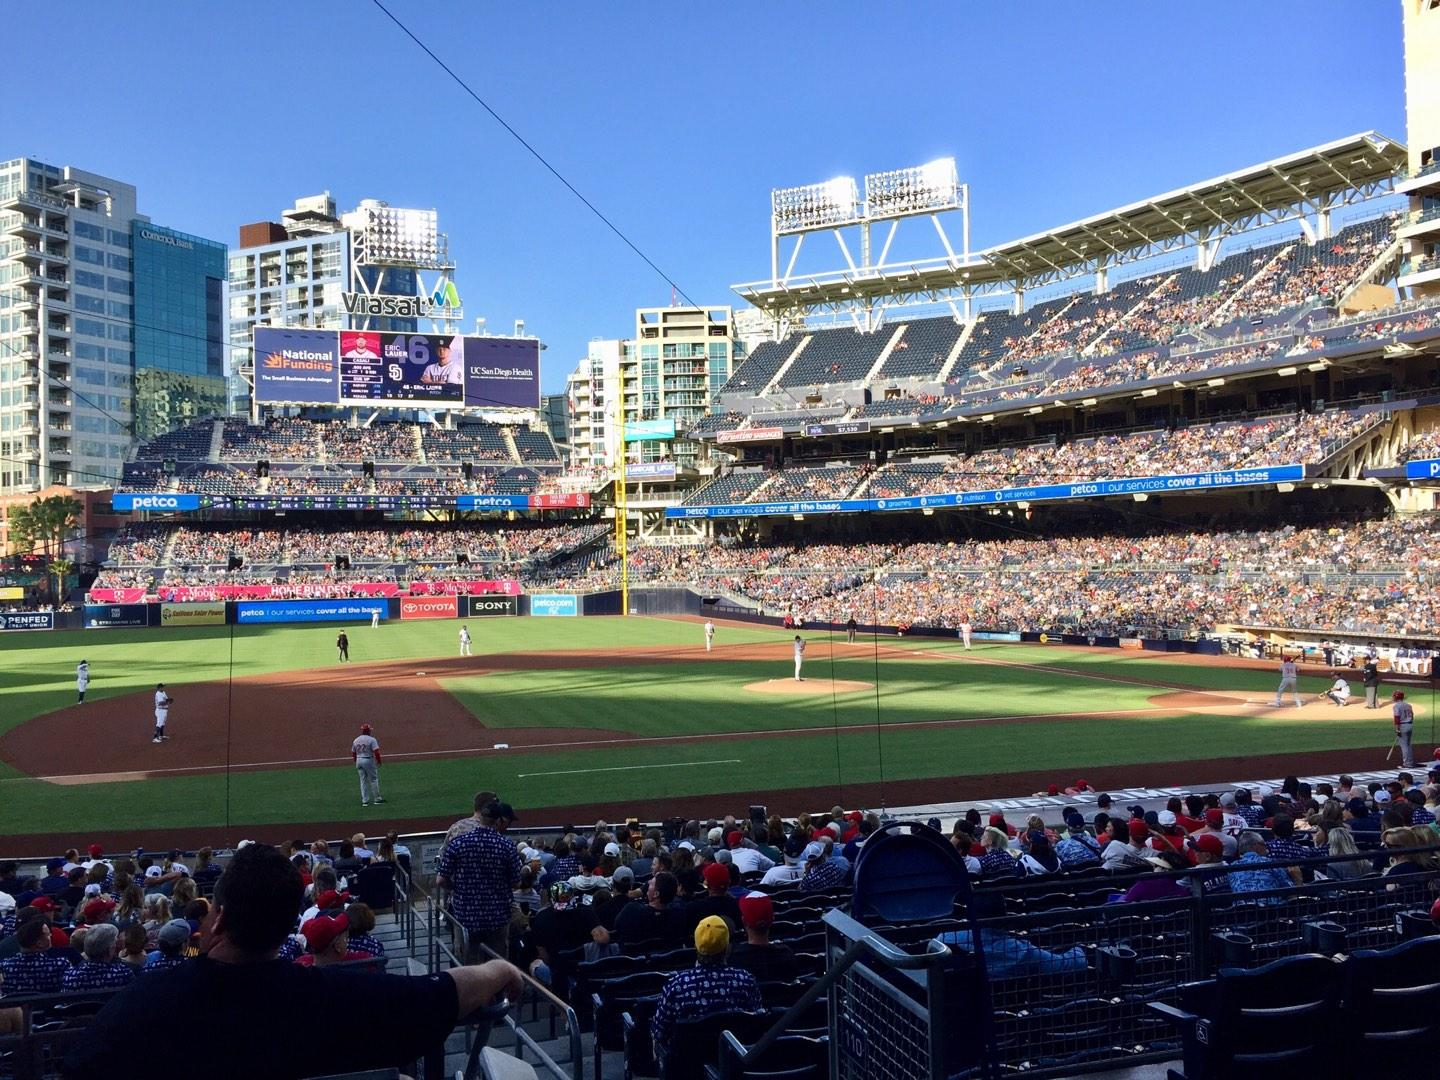 PETCO Park Section 112 Row 27 Seat 1